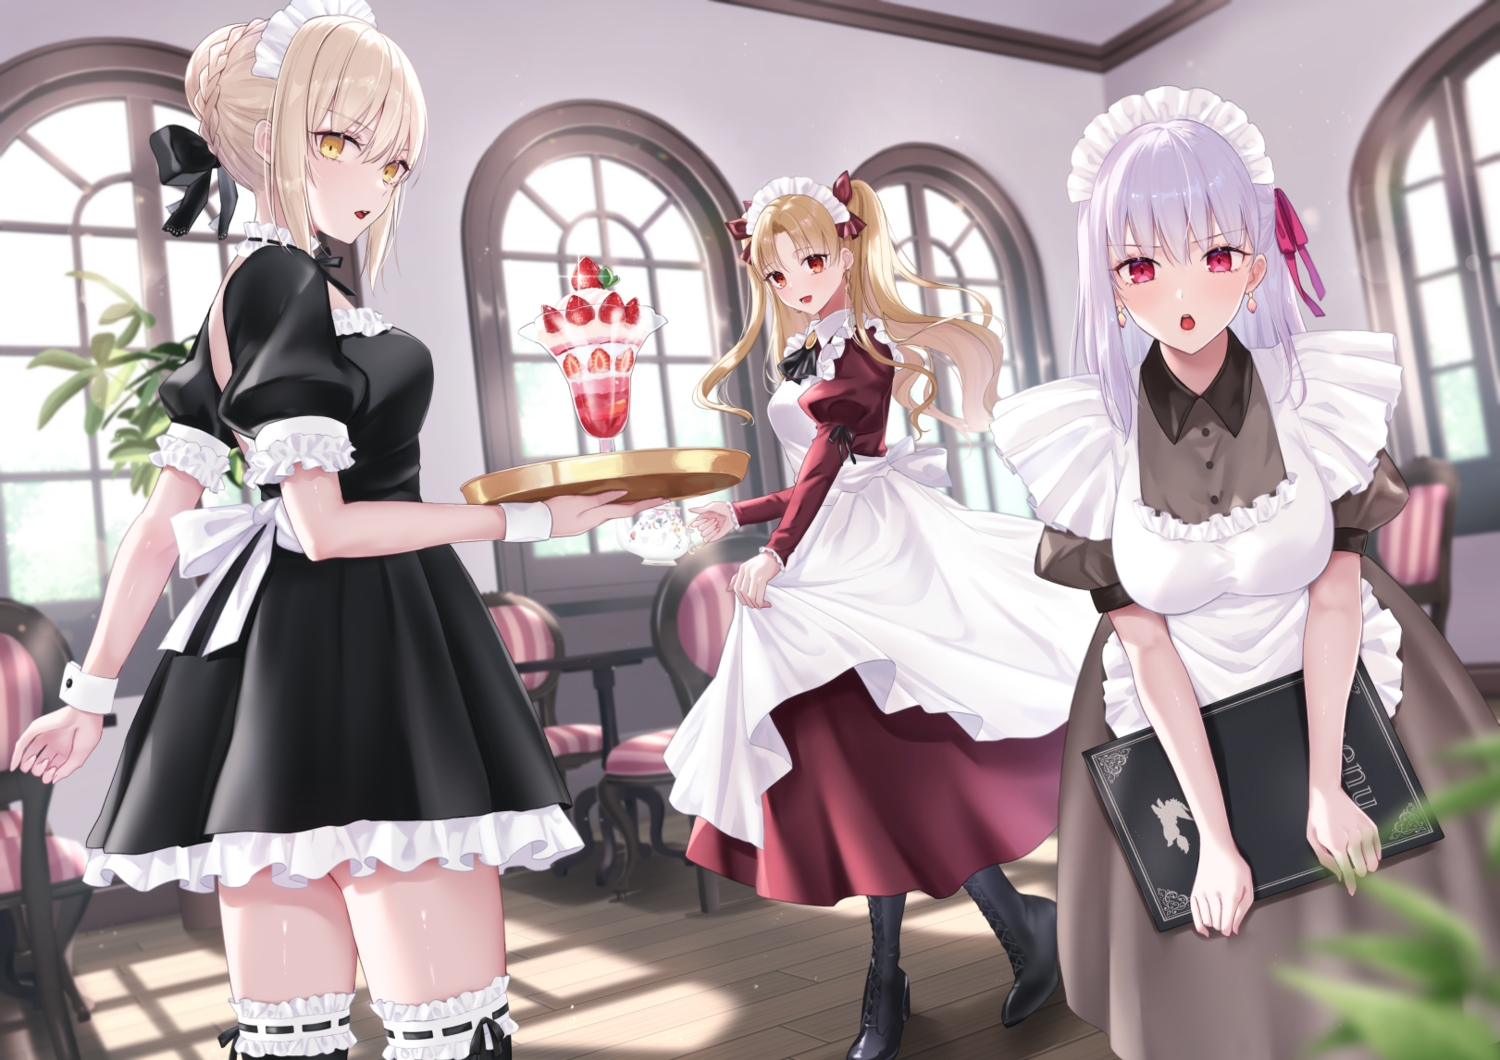 aliasing artoria_pendragon_(all) blonde_hair braids ereshkigal_(fate/grand_order) fate/grand_order fate_(series) food headband ice_cream kama_(fate/grand_order) maid meltymaple red_eyes saber saber_alter waitress yellow_eyes